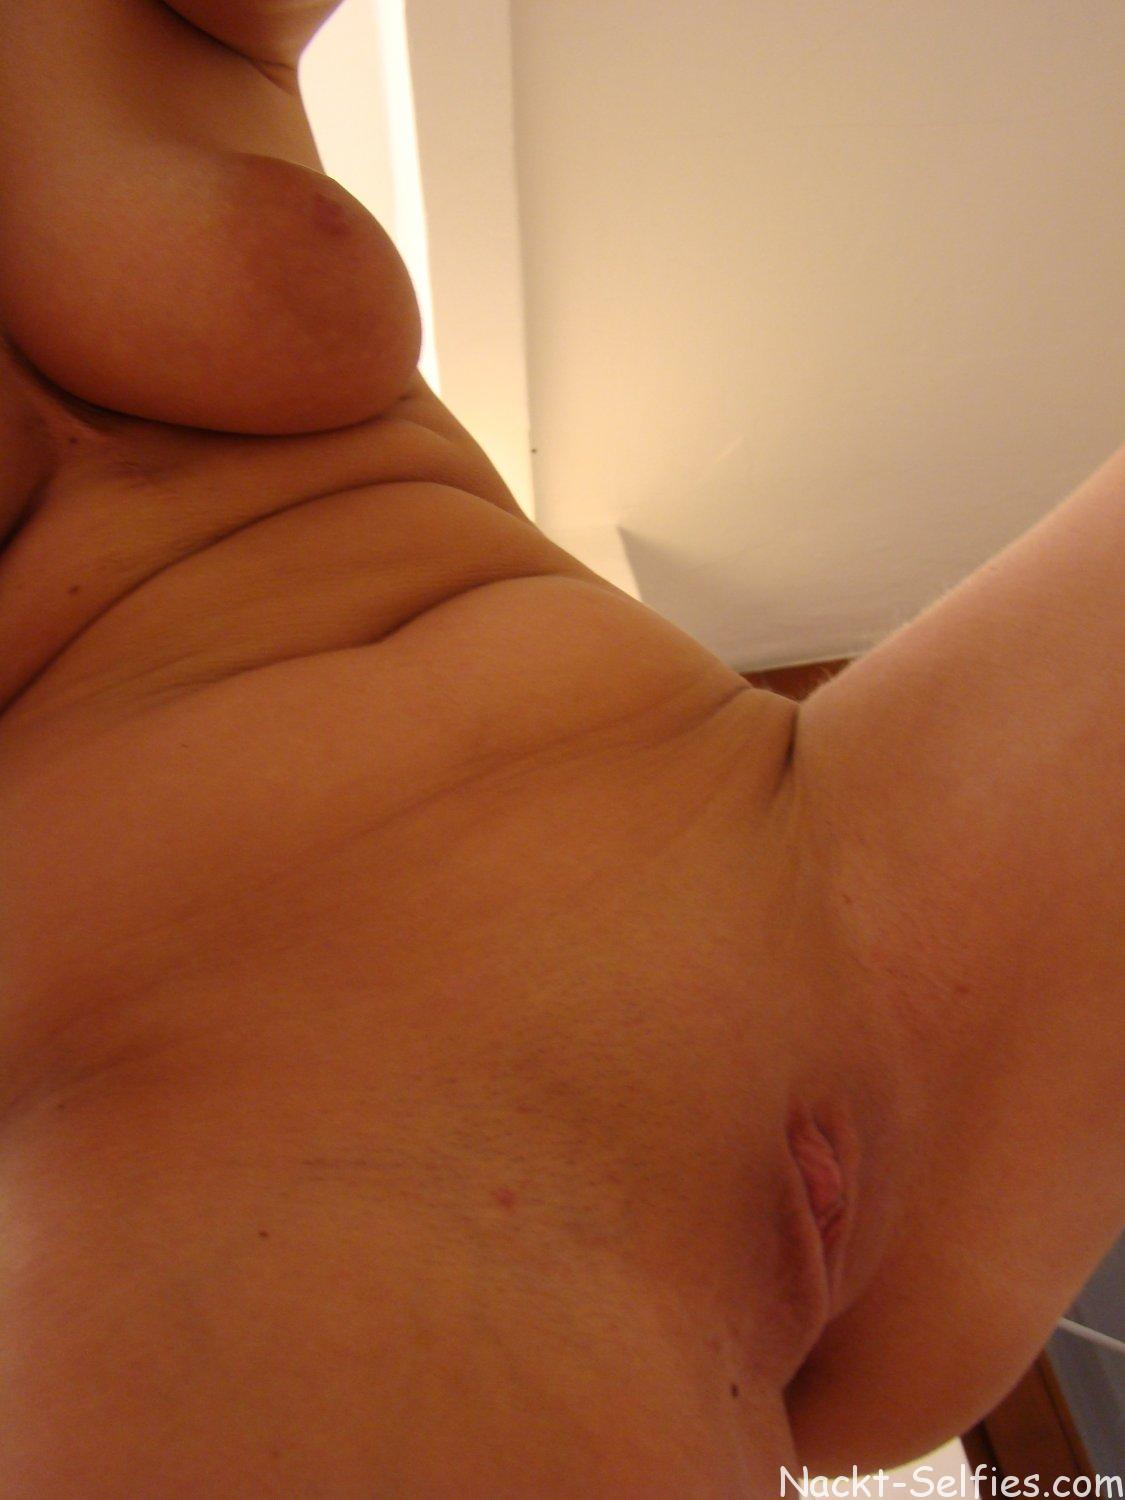 Privat Nackt Selfie Milf Bettina 06